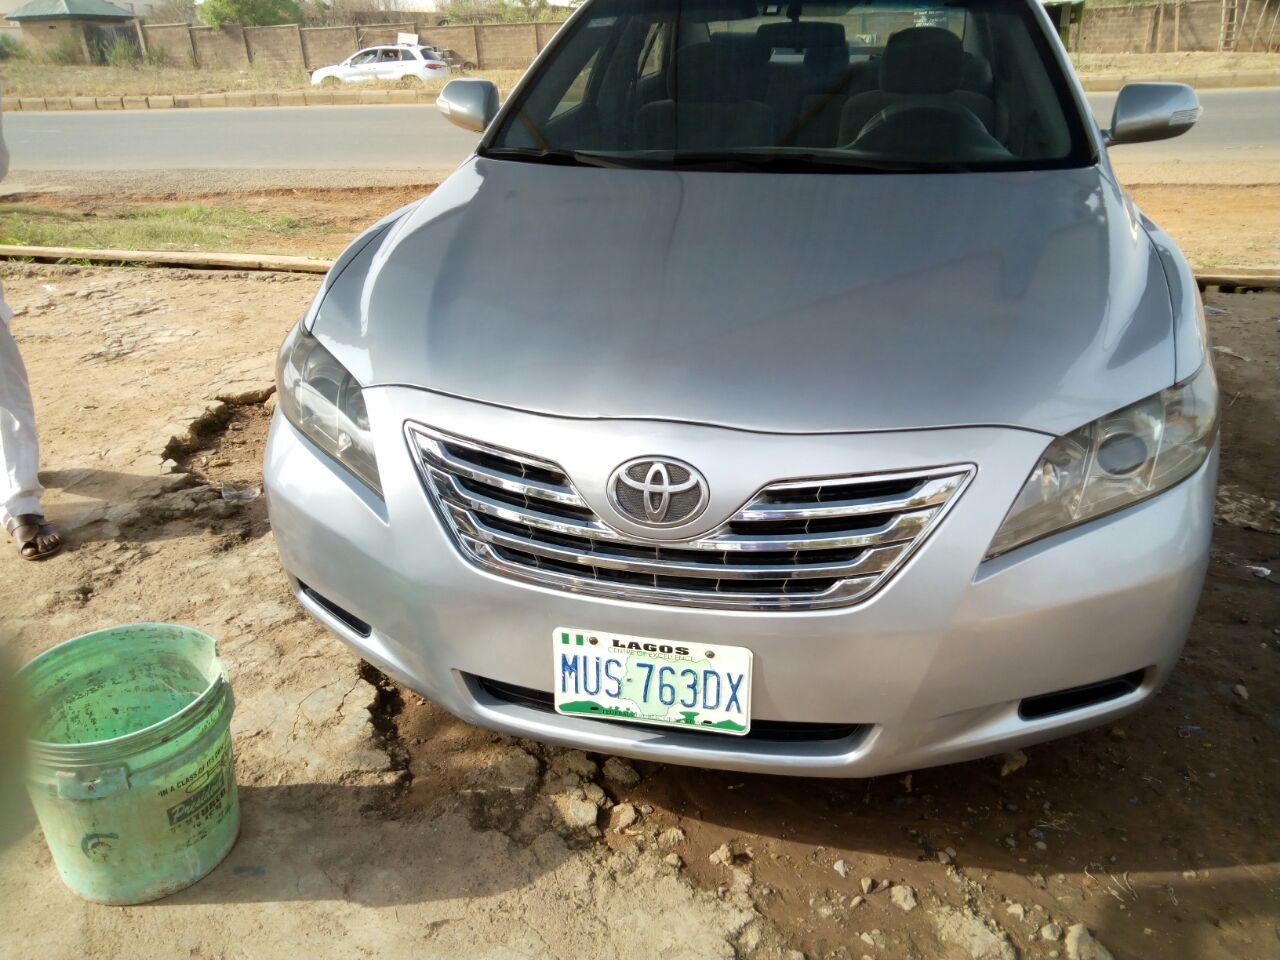 used 2007 toyota camry for sale in good condition nairaland general nigeria. Black Bedroom Furniture Sets. Home Design Ideas